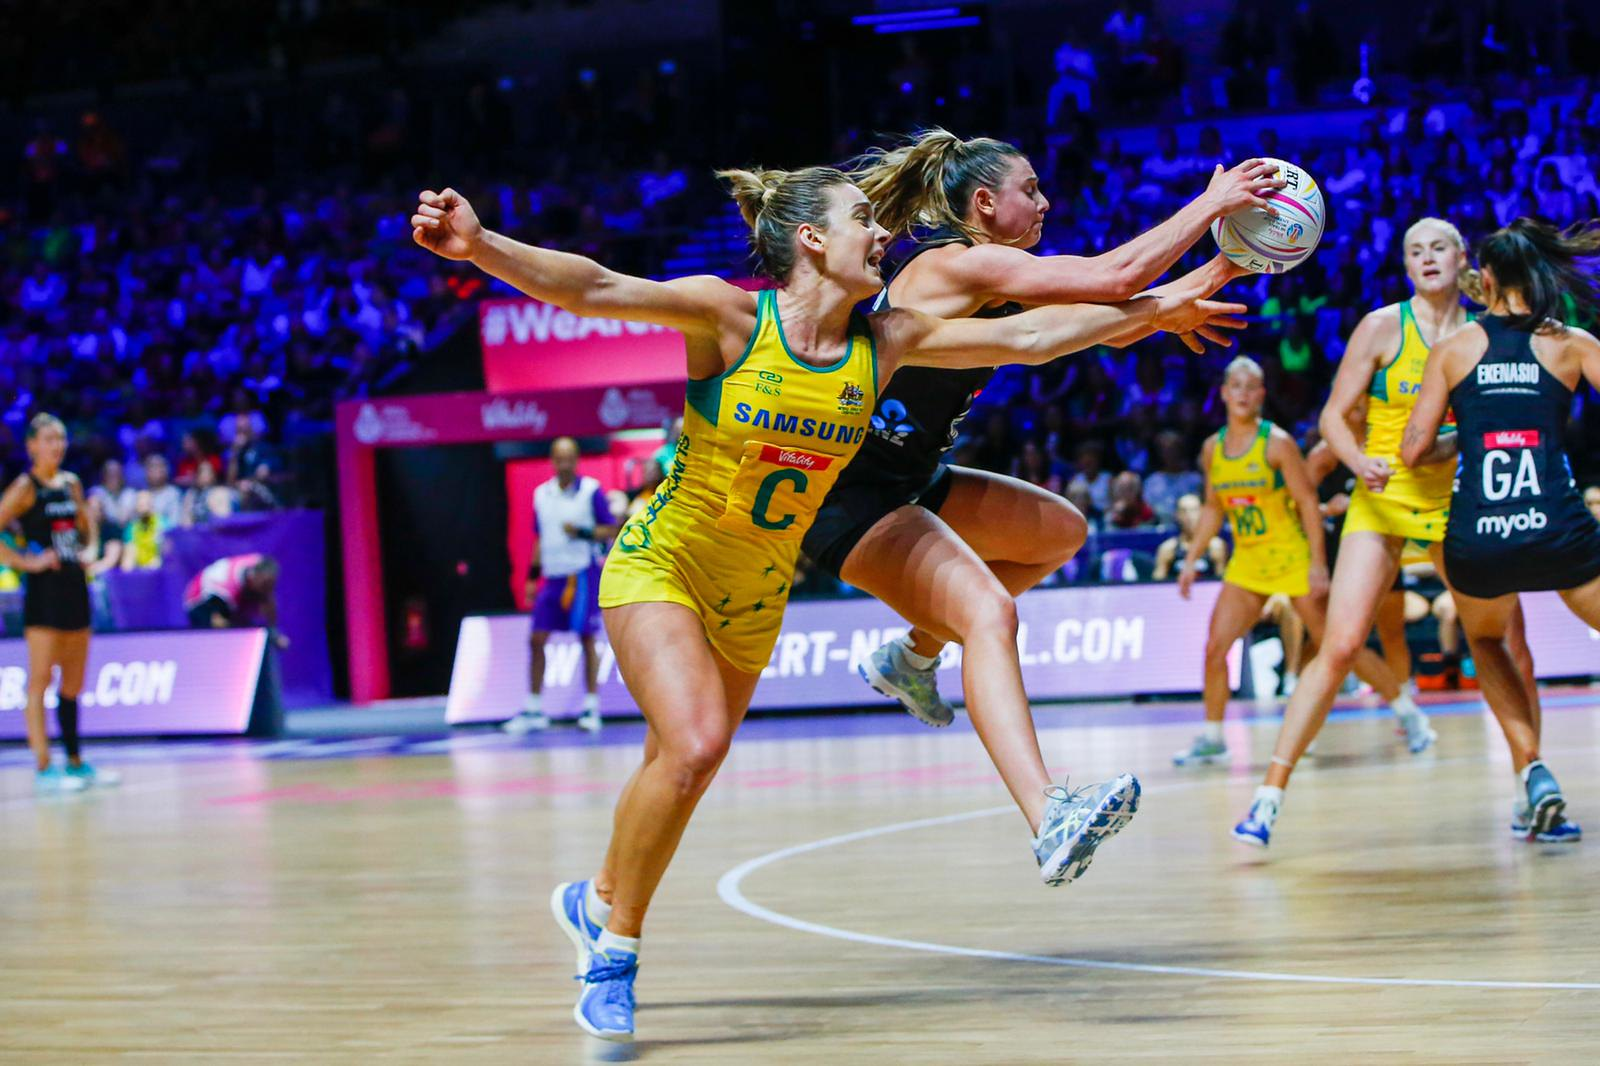 Liz Watson and Gina Crampton, Netball World Cup 2019, Diamonds v Silver Ferns